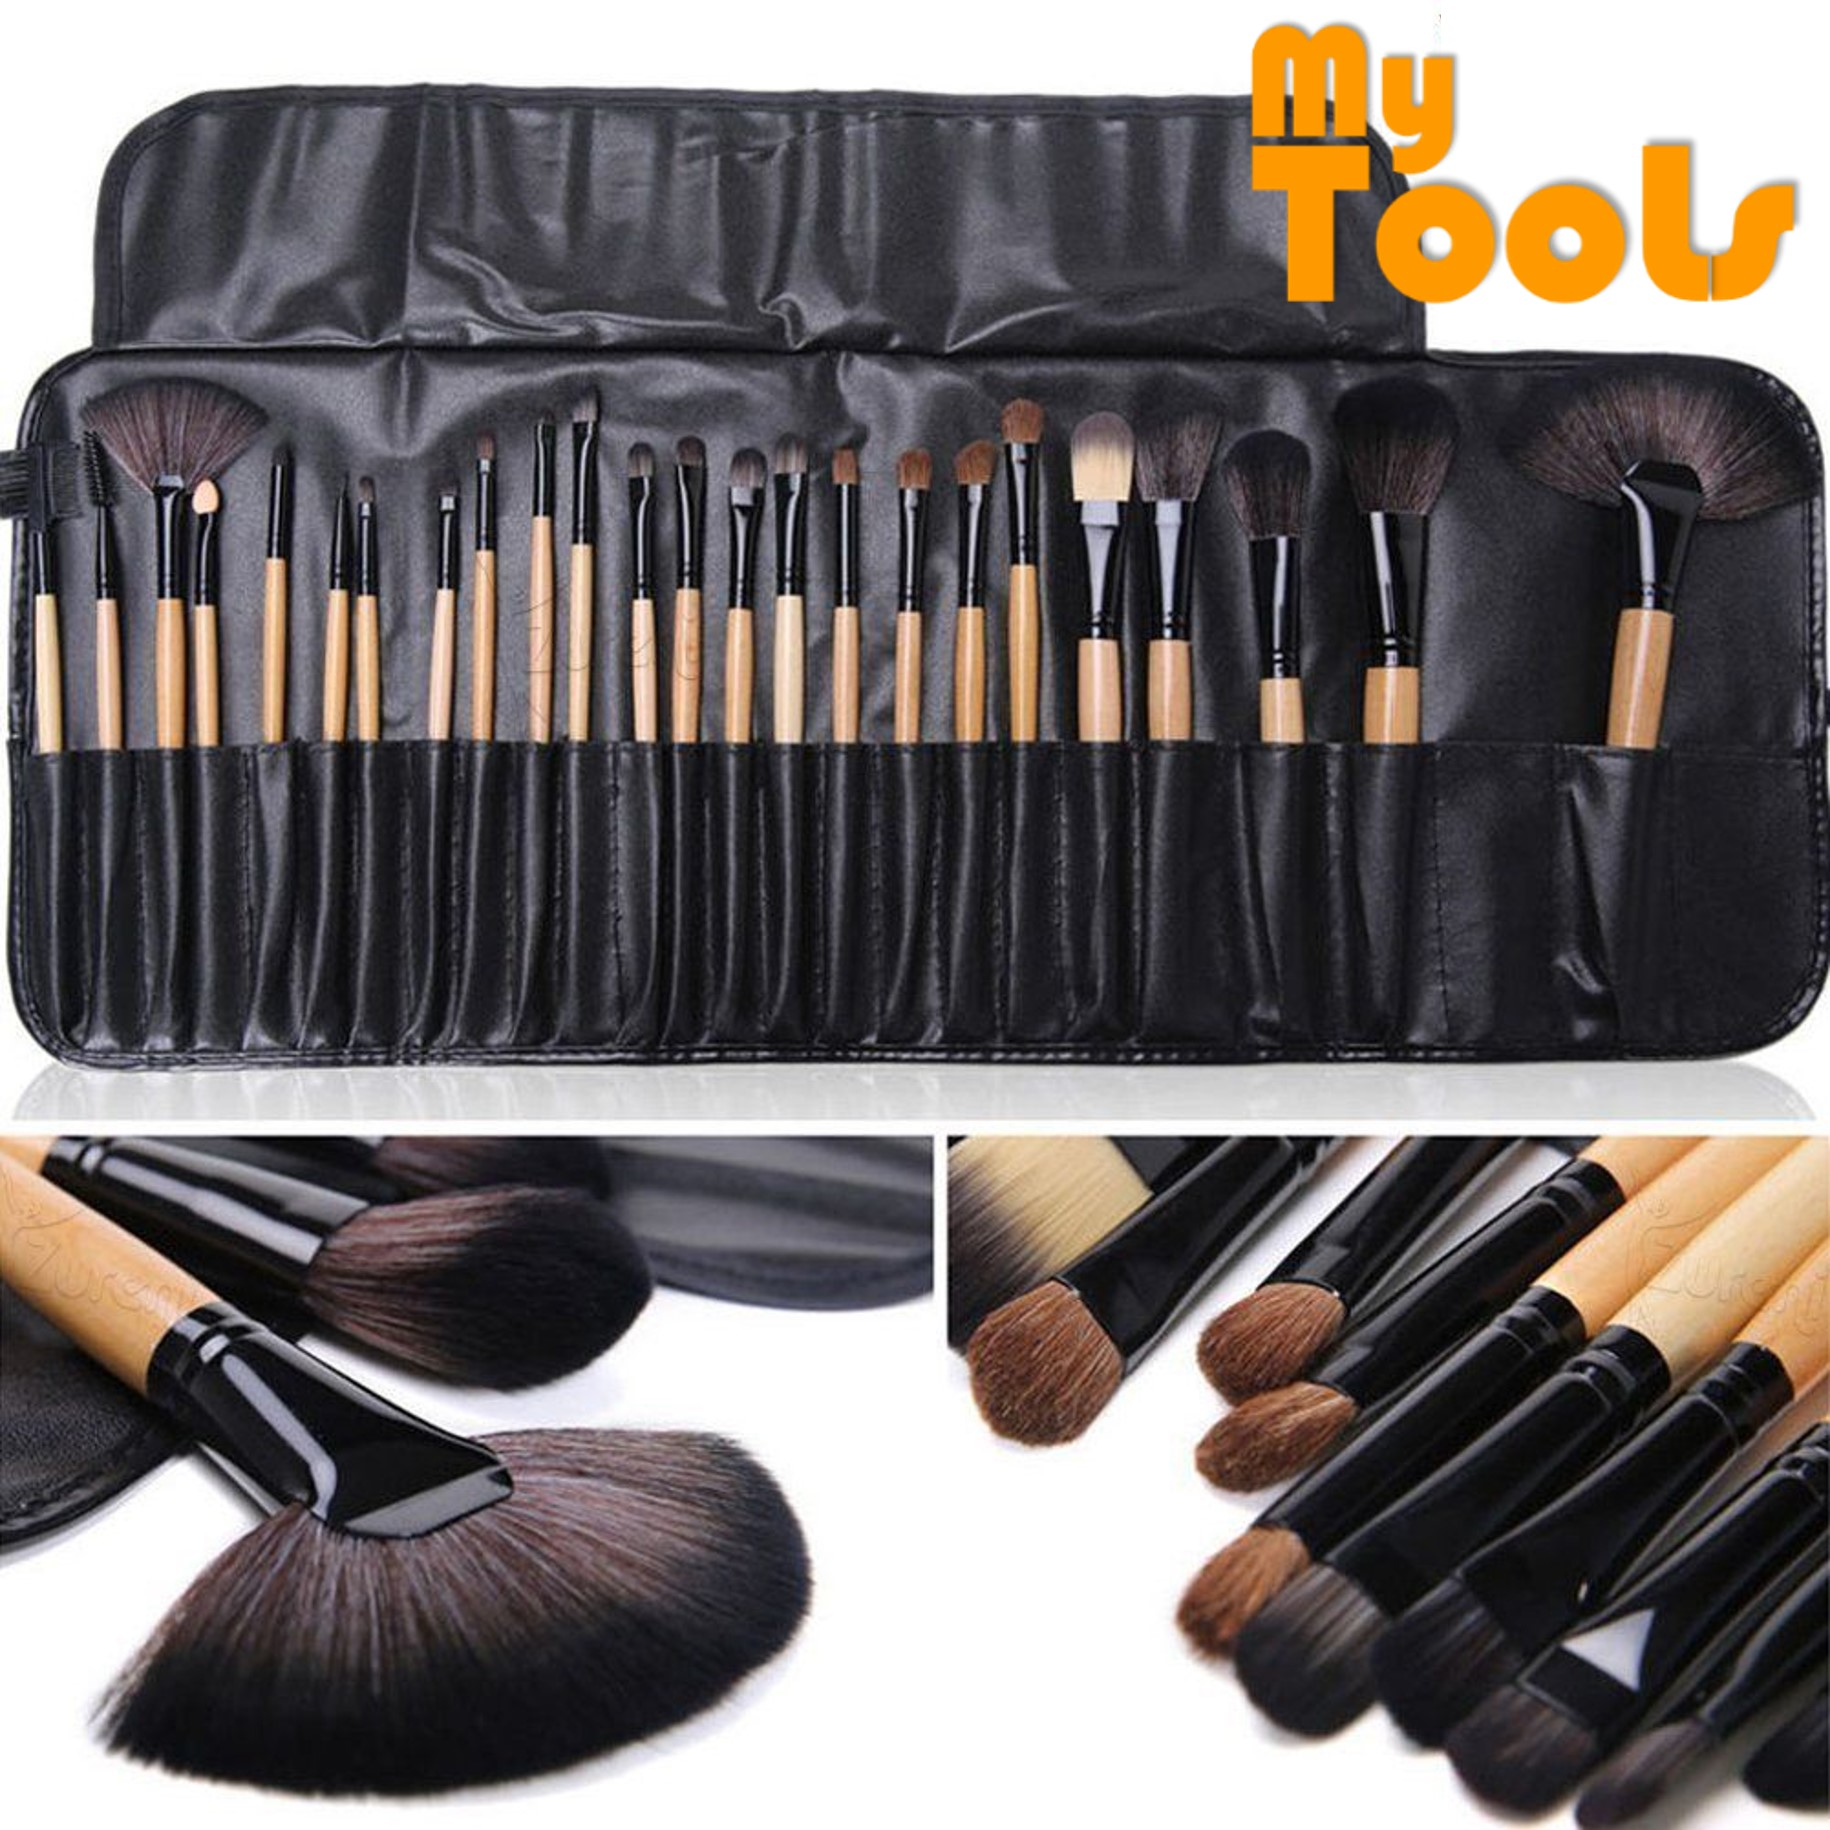 24pcs Makeup Brushes Set tools Toiletry Kit Wool Make Up Brushes Full Function Case Cosmetic Brush Make-up Tool